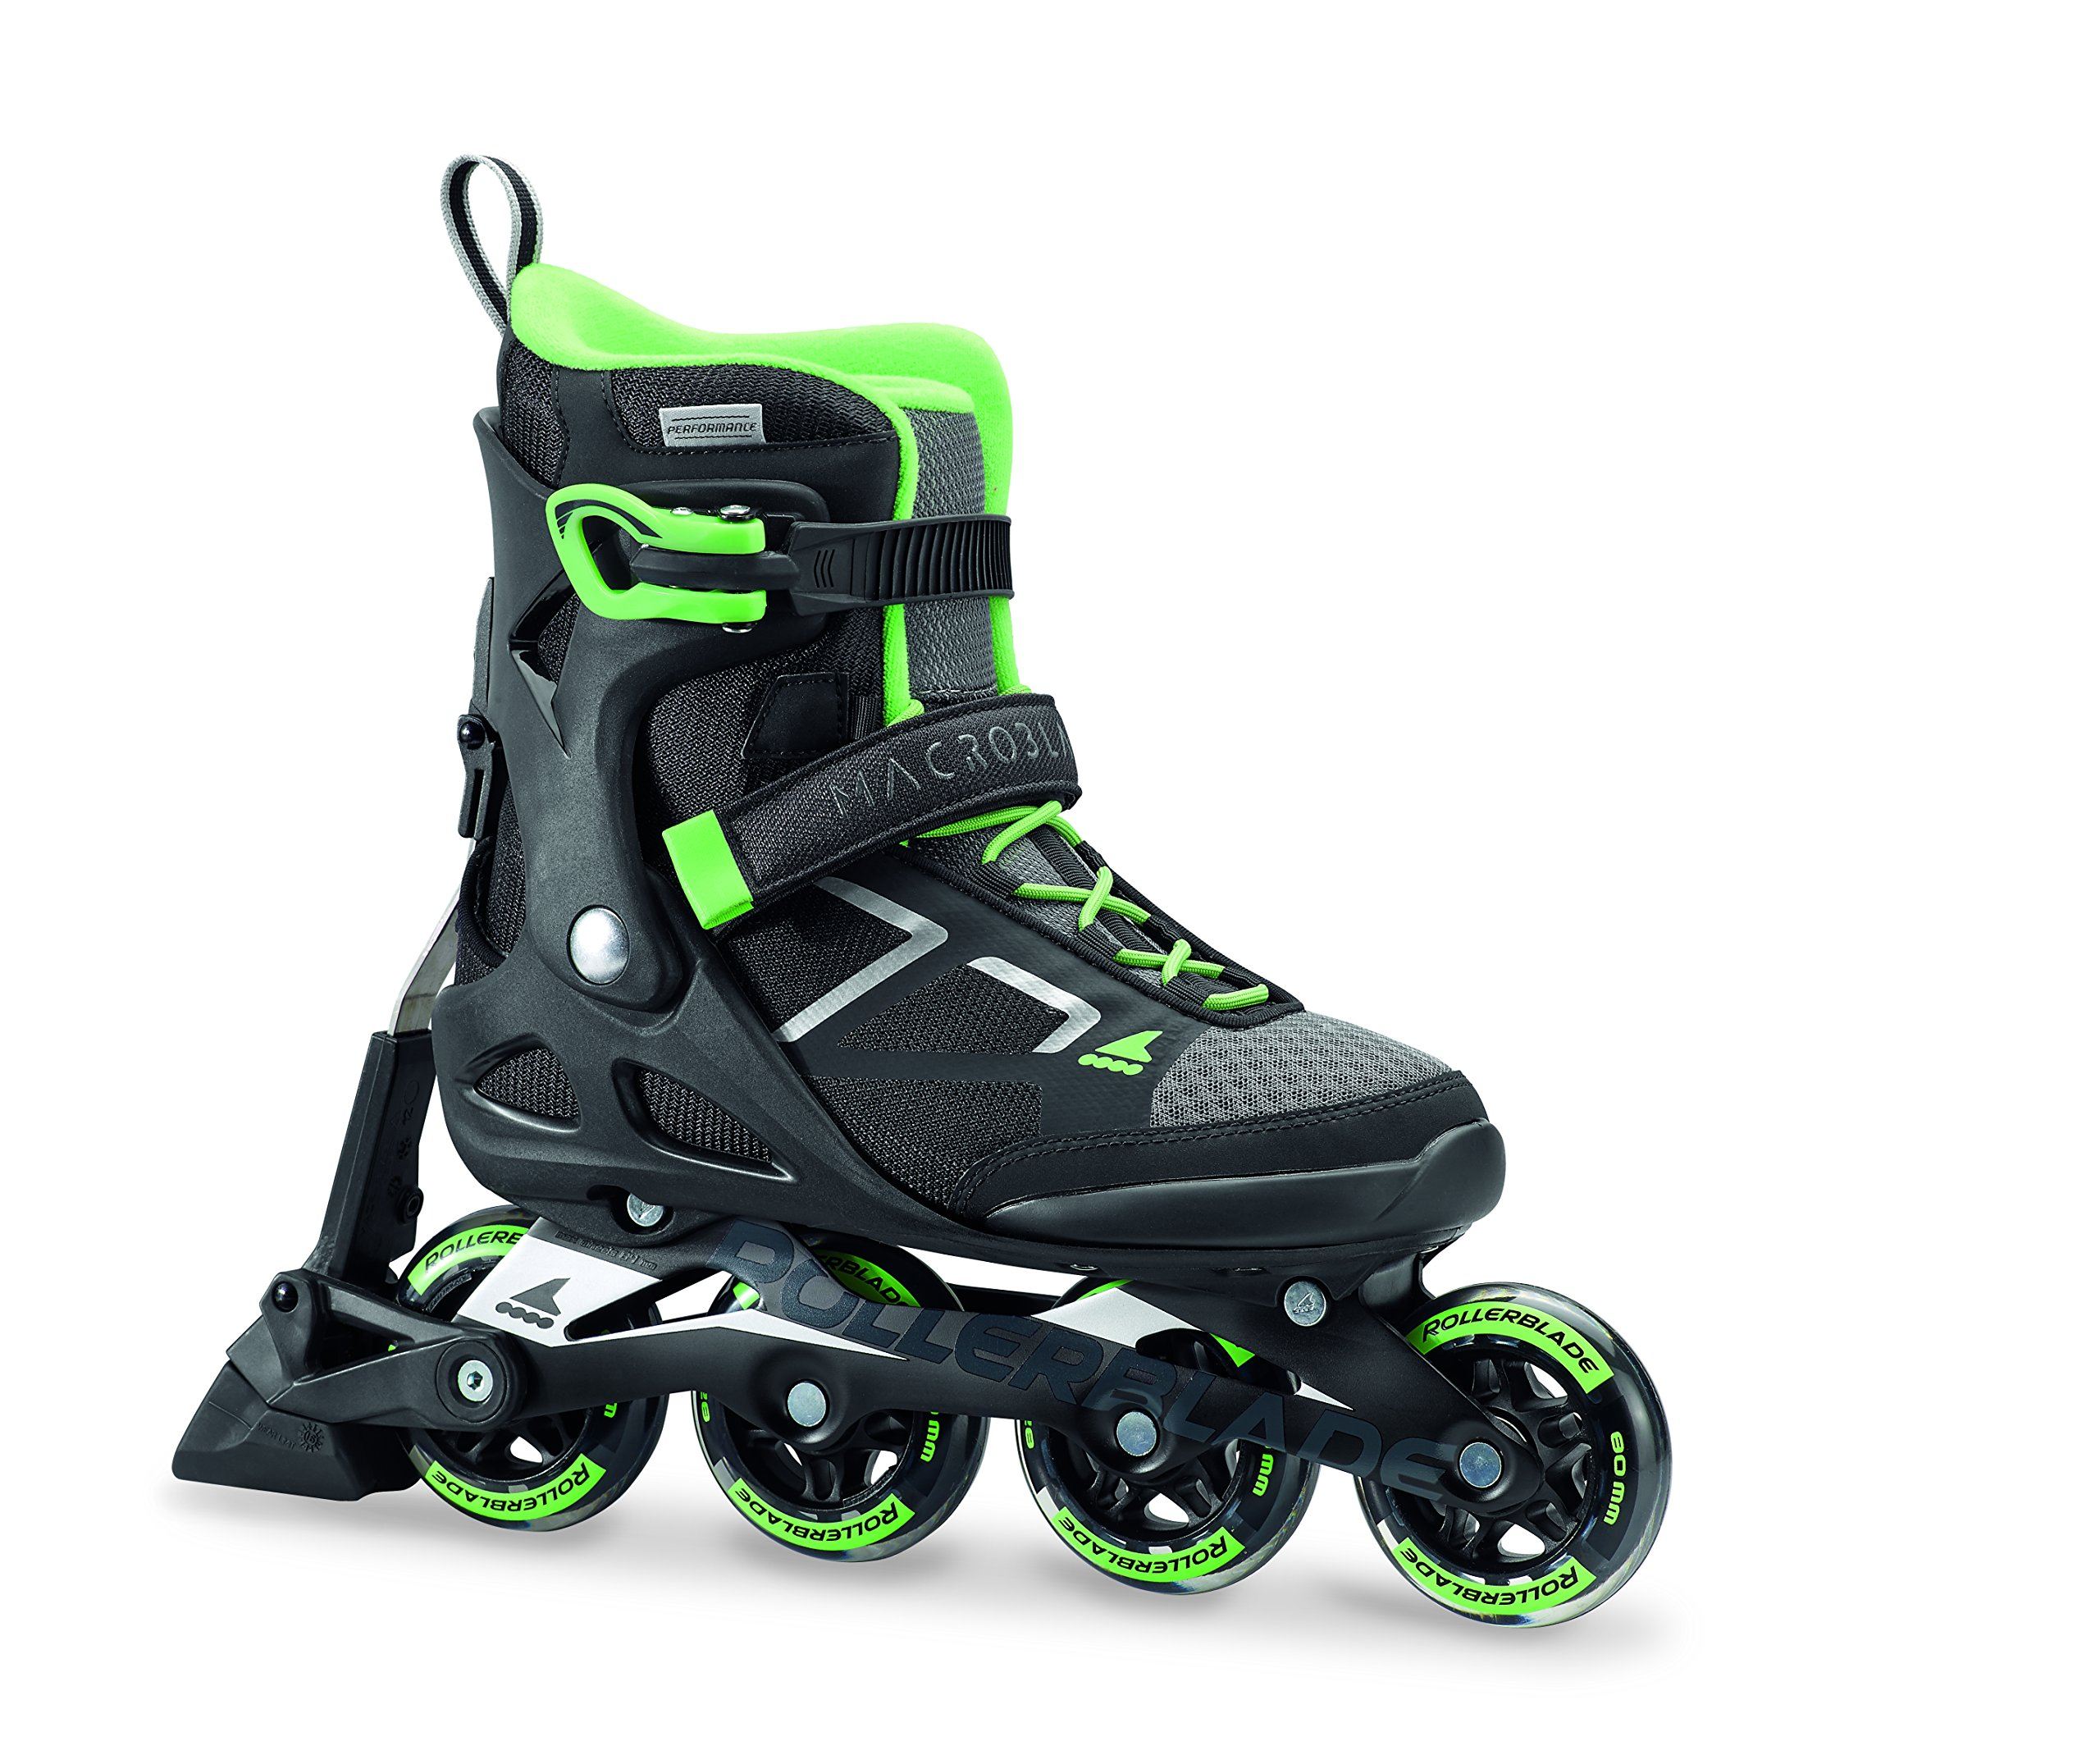 Rollerblade Macroblade 80 ABT W Women's Inline Fitness Skates, Womens, 07847000 824, Black/Light Green, 38.5